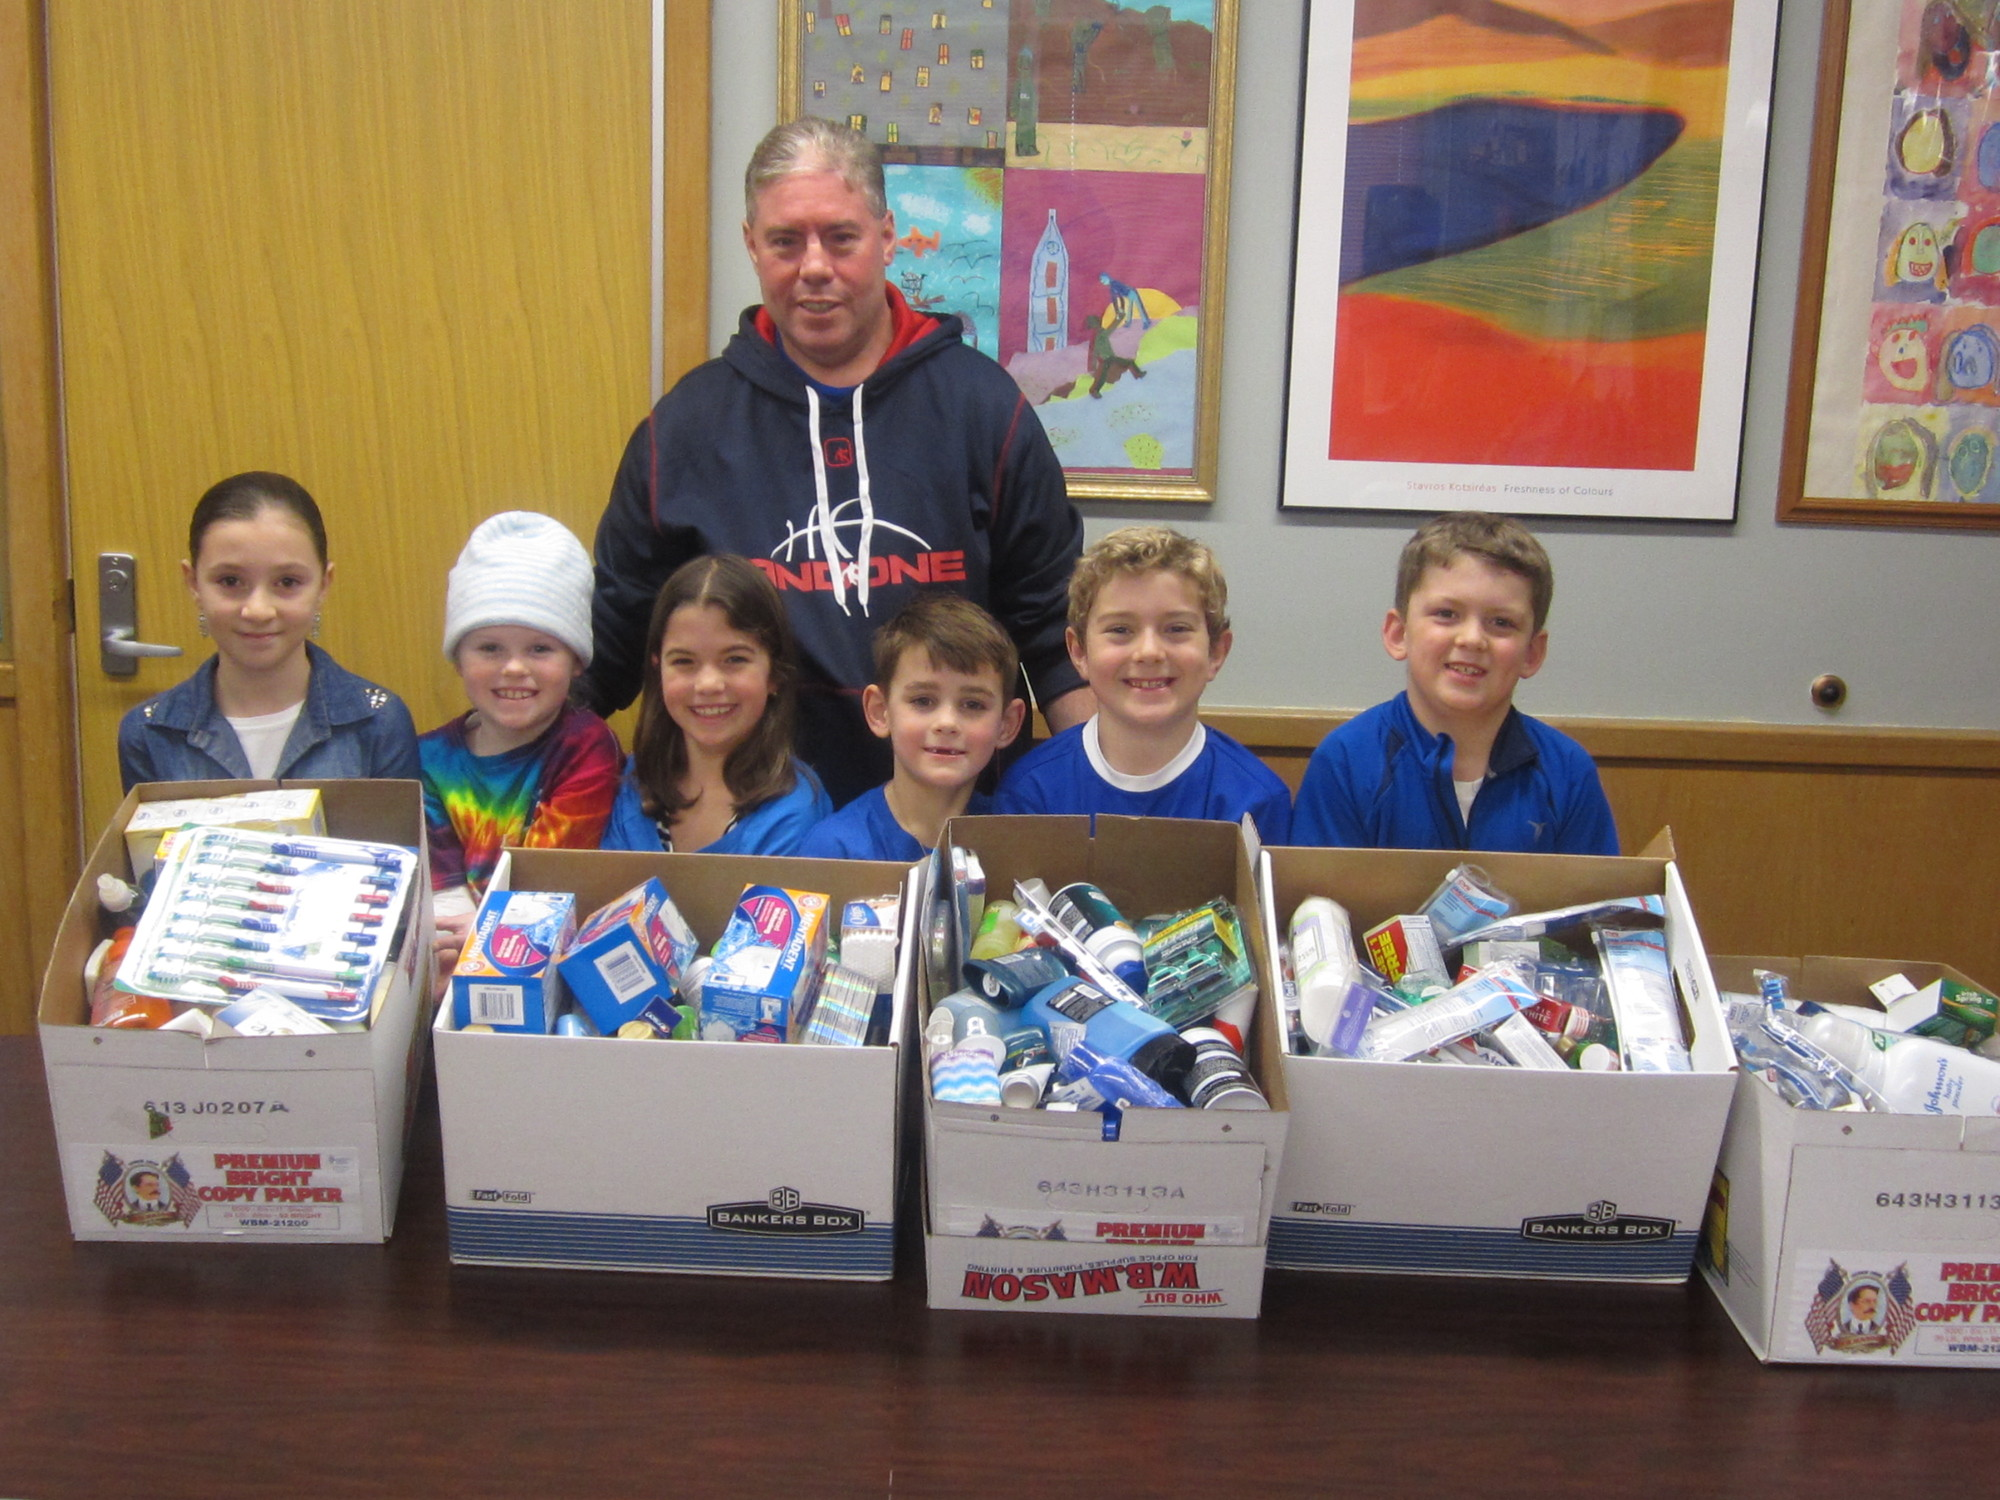 For the first time, Jerry Harrington, a Saw Mill parent, worked with his children's school to organize a collection for military personnel overseas after the holiday season.